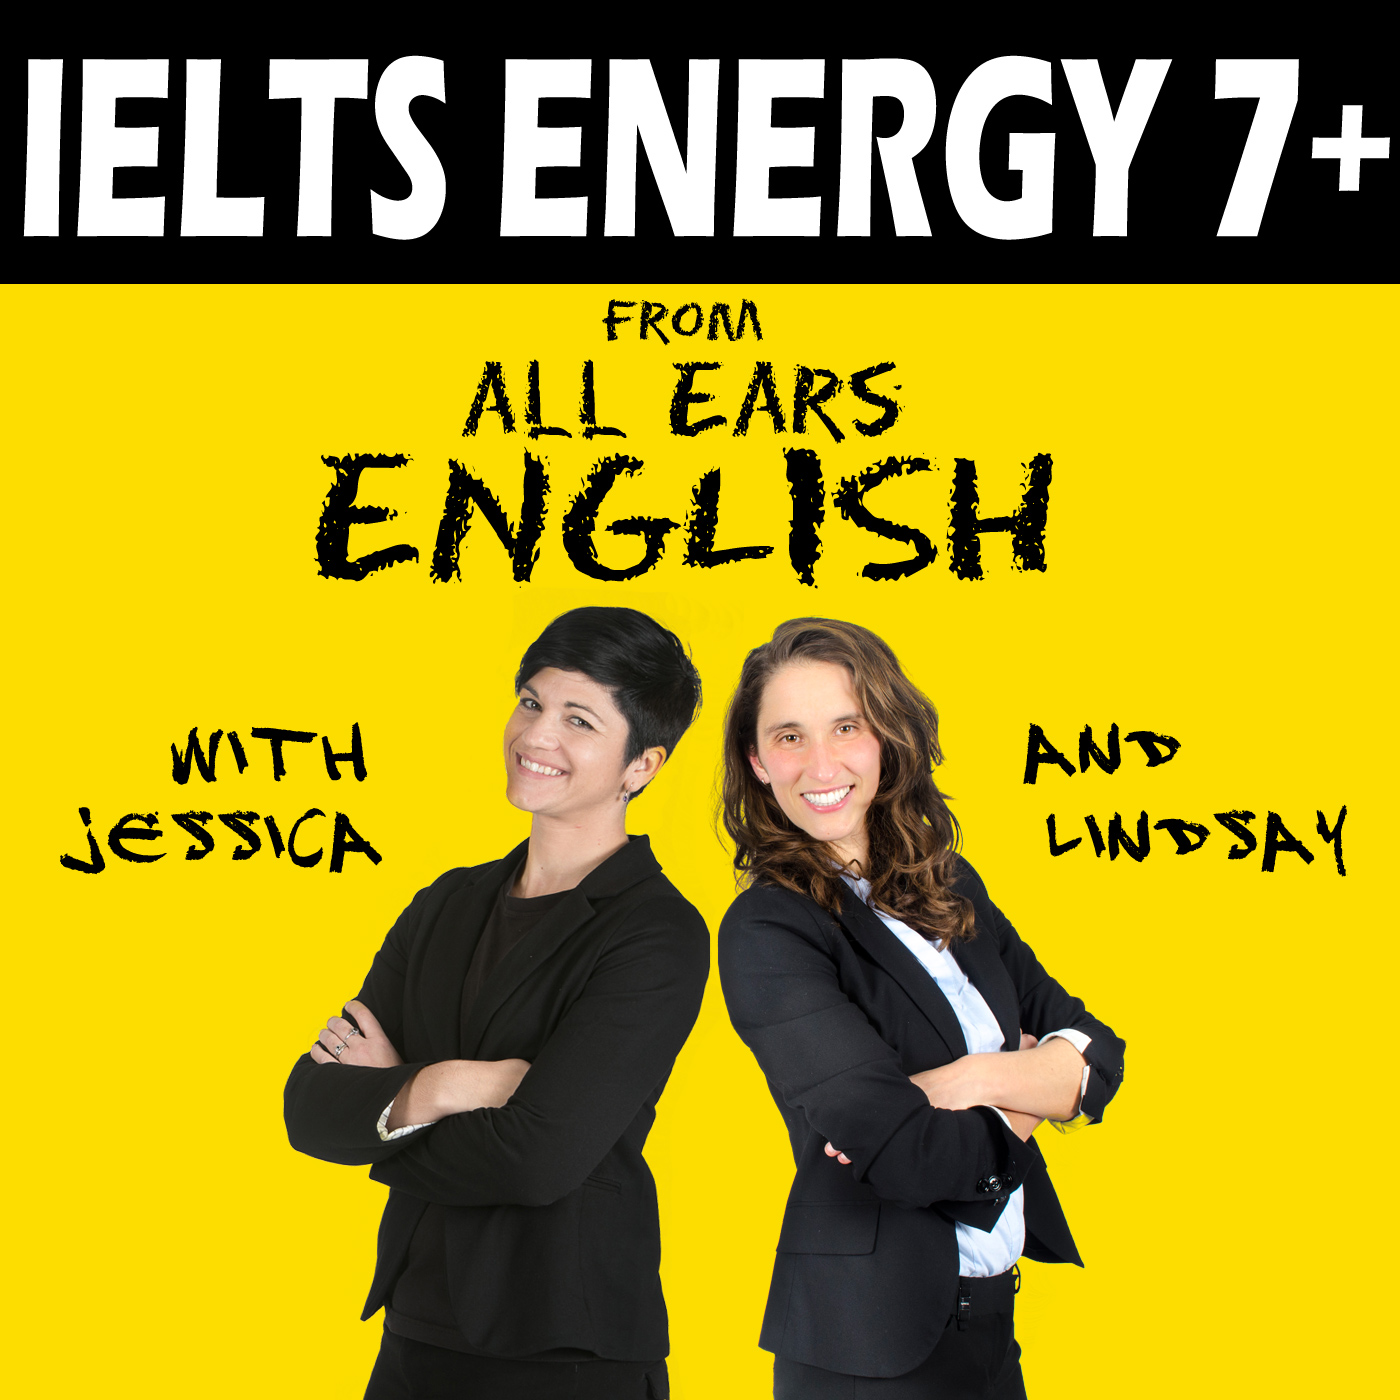 IELTS ENERGY ARTWORK